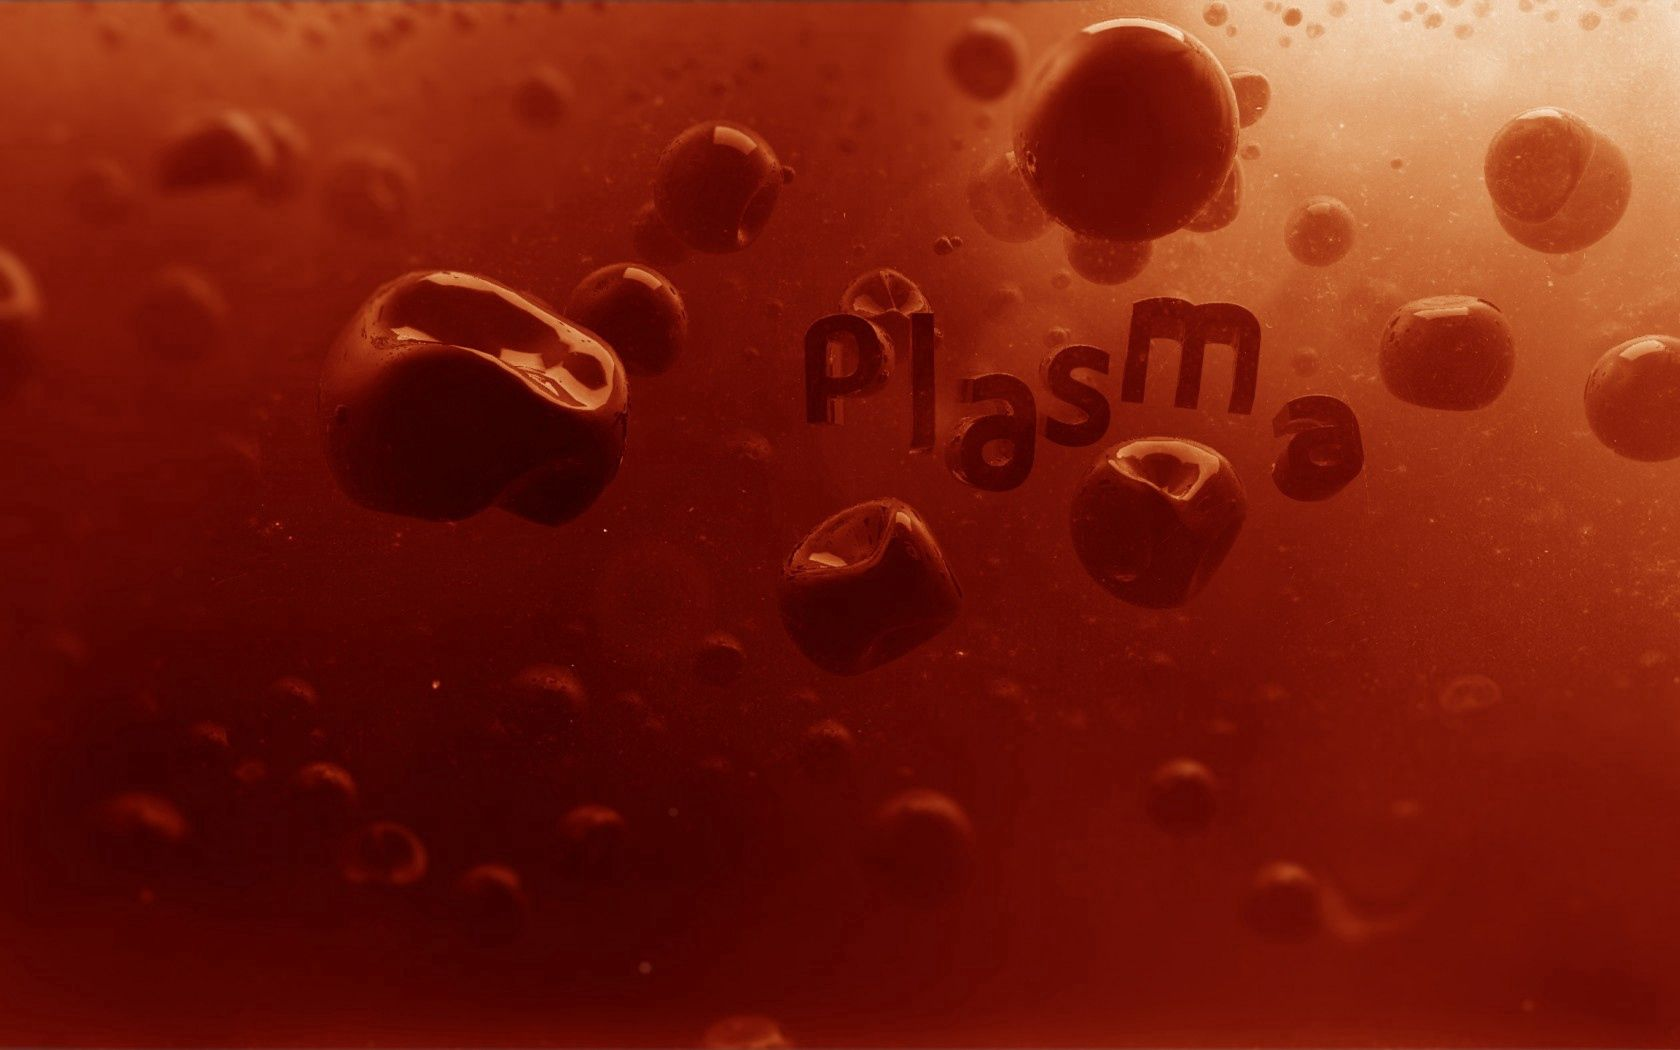 102424 download wallpaper Art, Blood, Words, Plasma screensavers and pictures for free